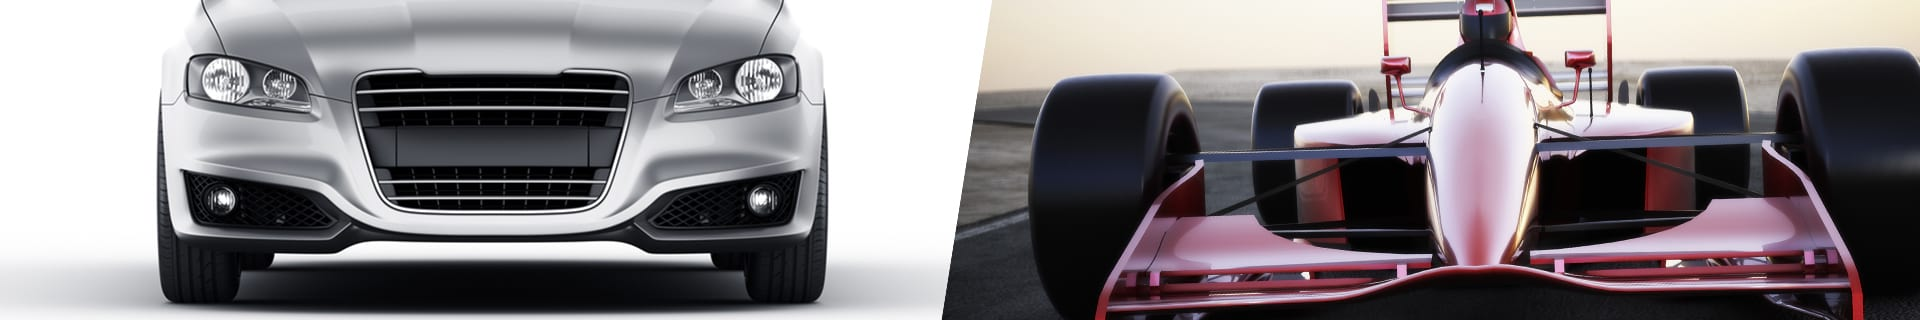 Differences between road and racing tyres